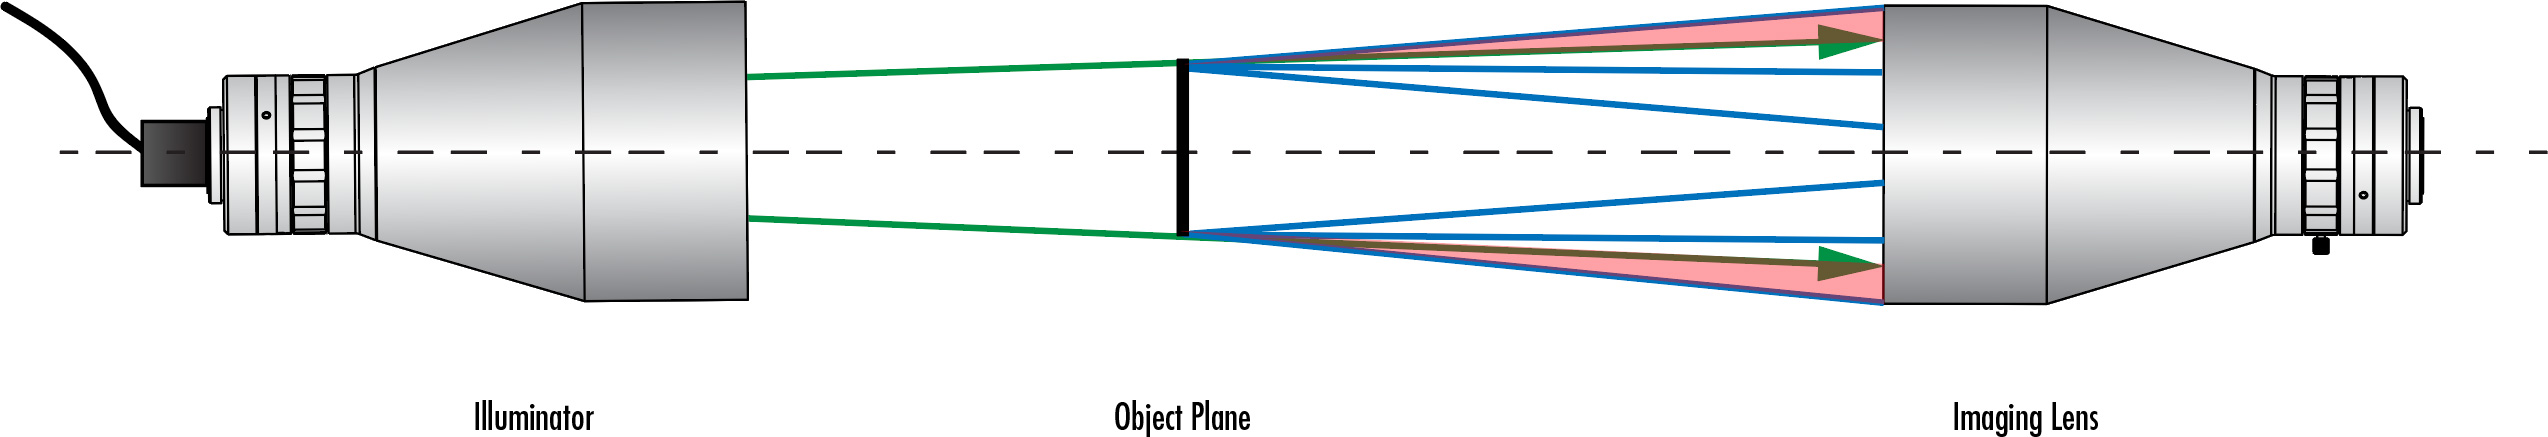 Underfilling occurs if the NA of the illumination source is smaller than the NA of the imaging lens, reducing contrast and resulting in loss of object information. Green lines represent the NA of the illumination source and blue lines represent the NA of the imaging lens.